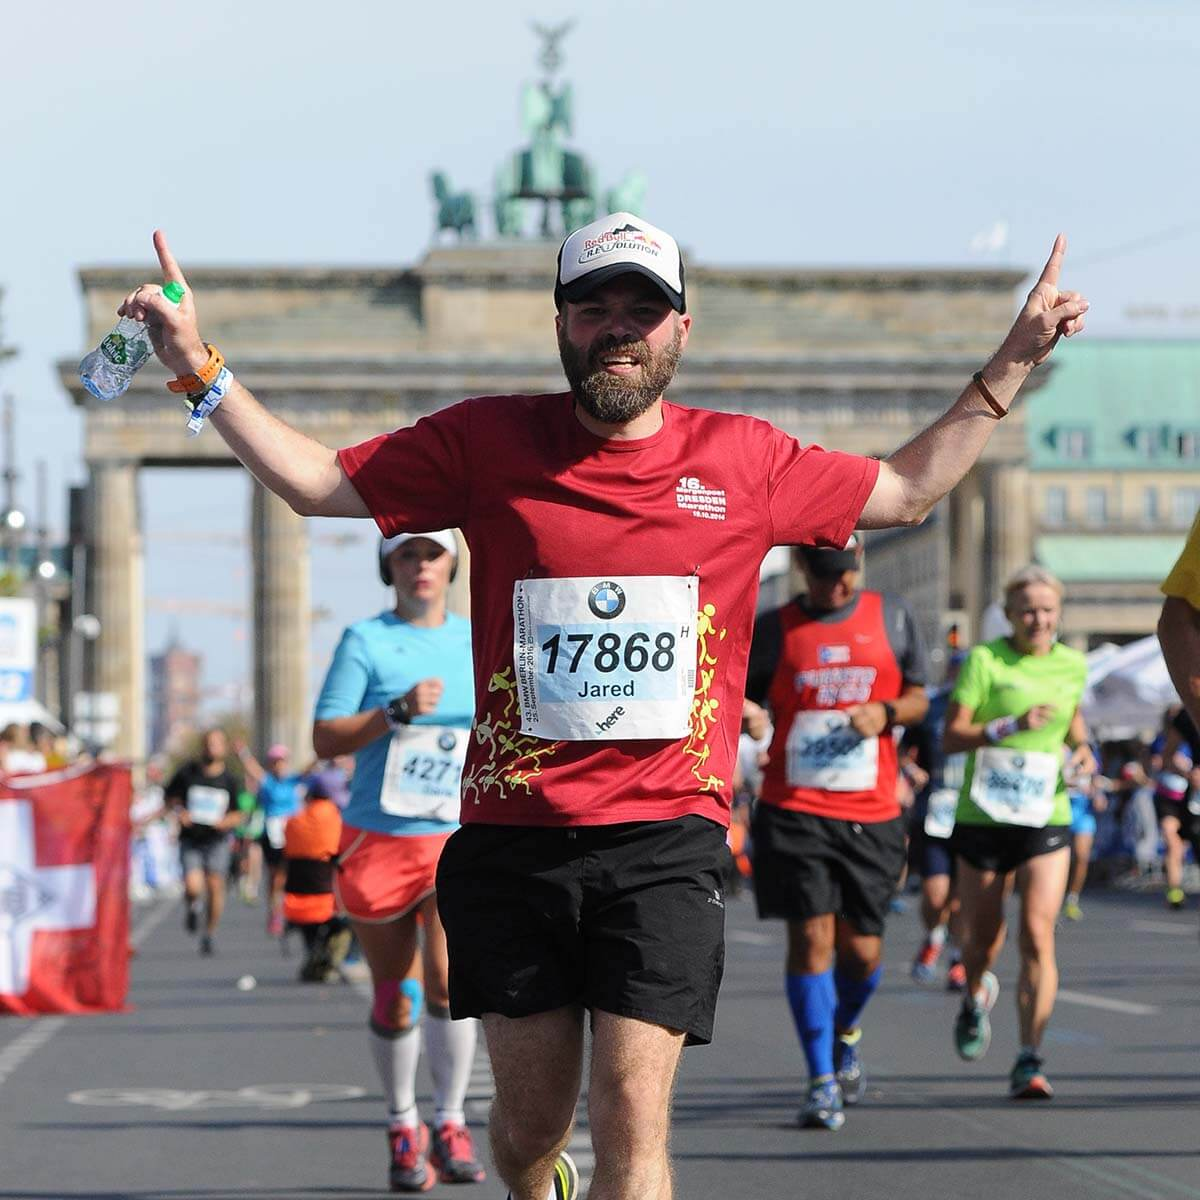 HOKA fan Jared running in Berlin